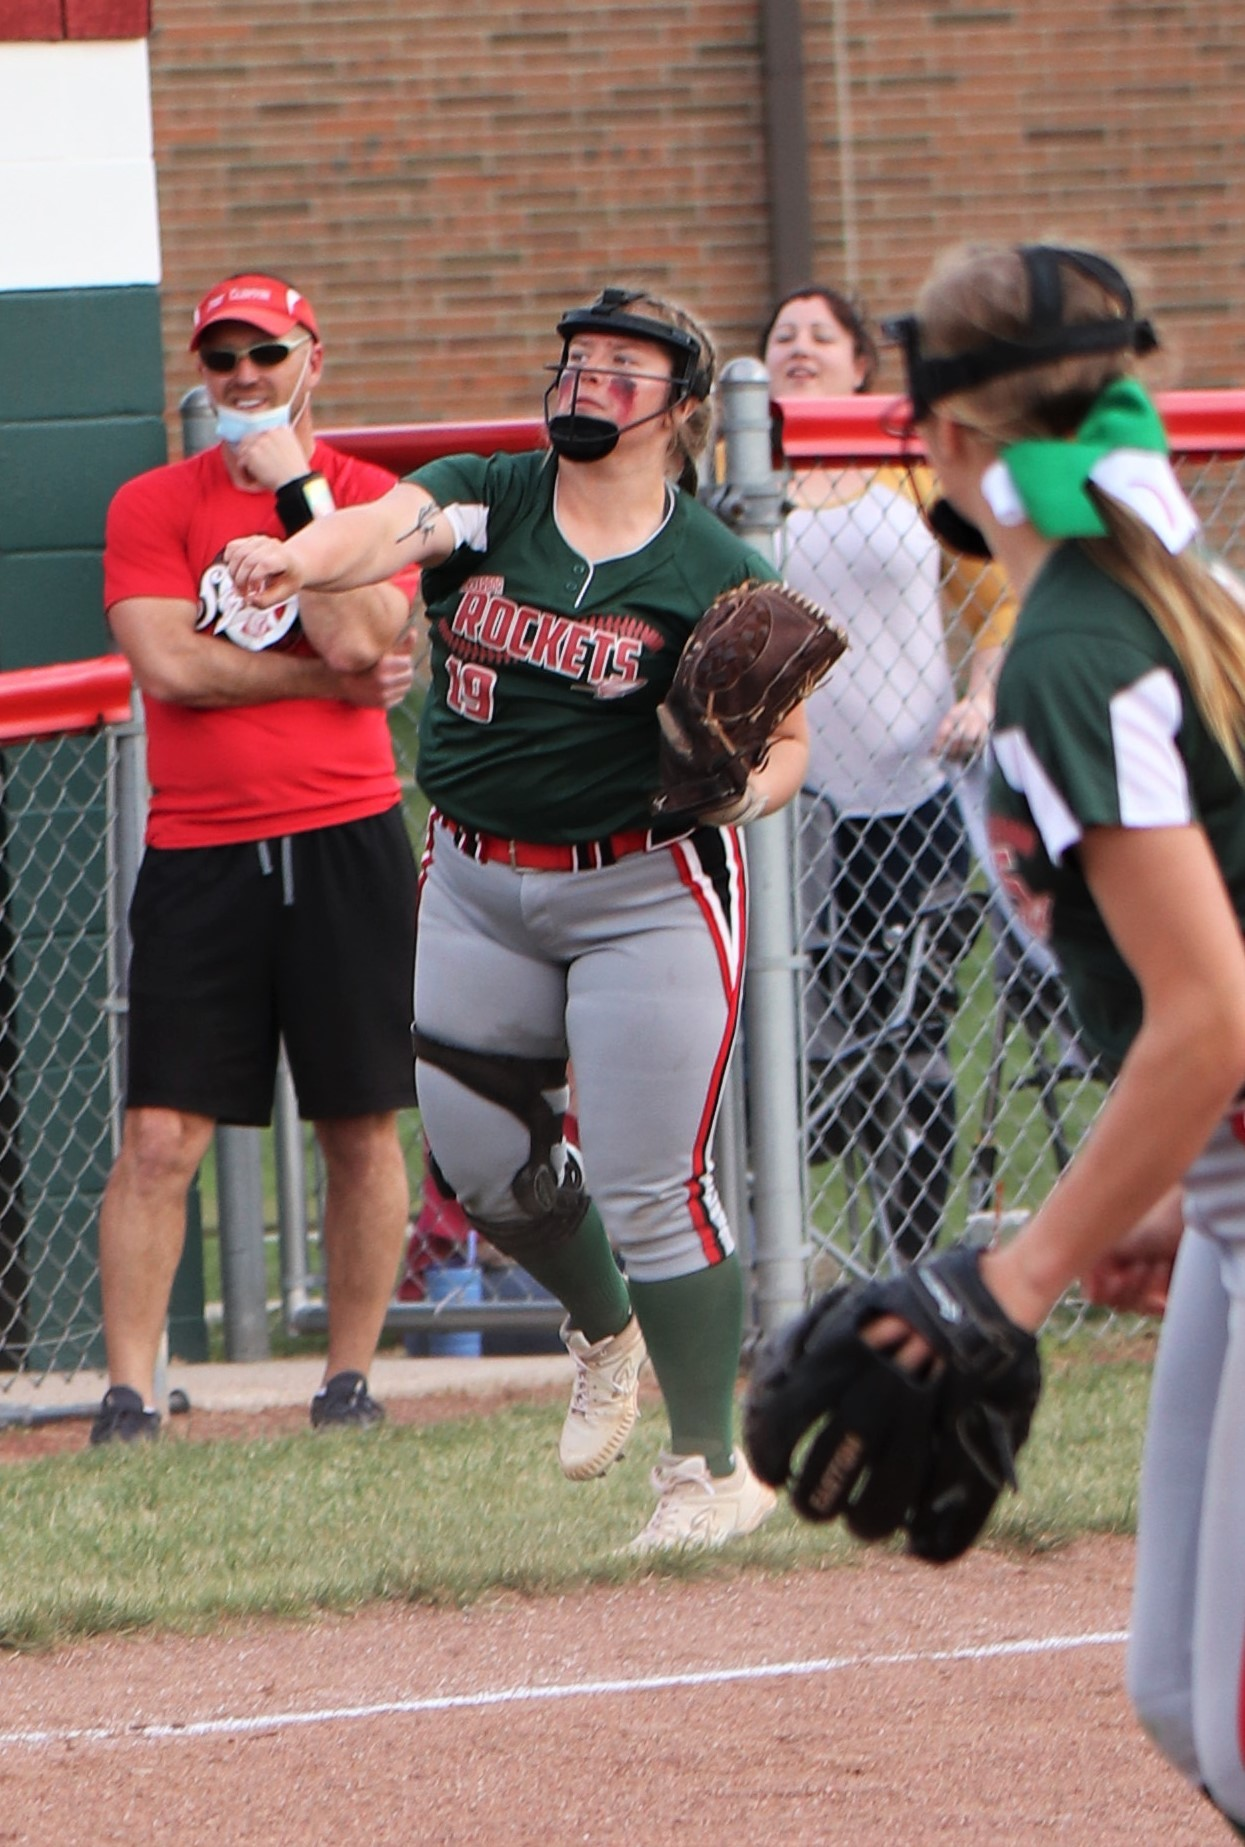 Oak Harbor junior catcher Tori Smith behind the plate. (Photo by Laura Bolander)